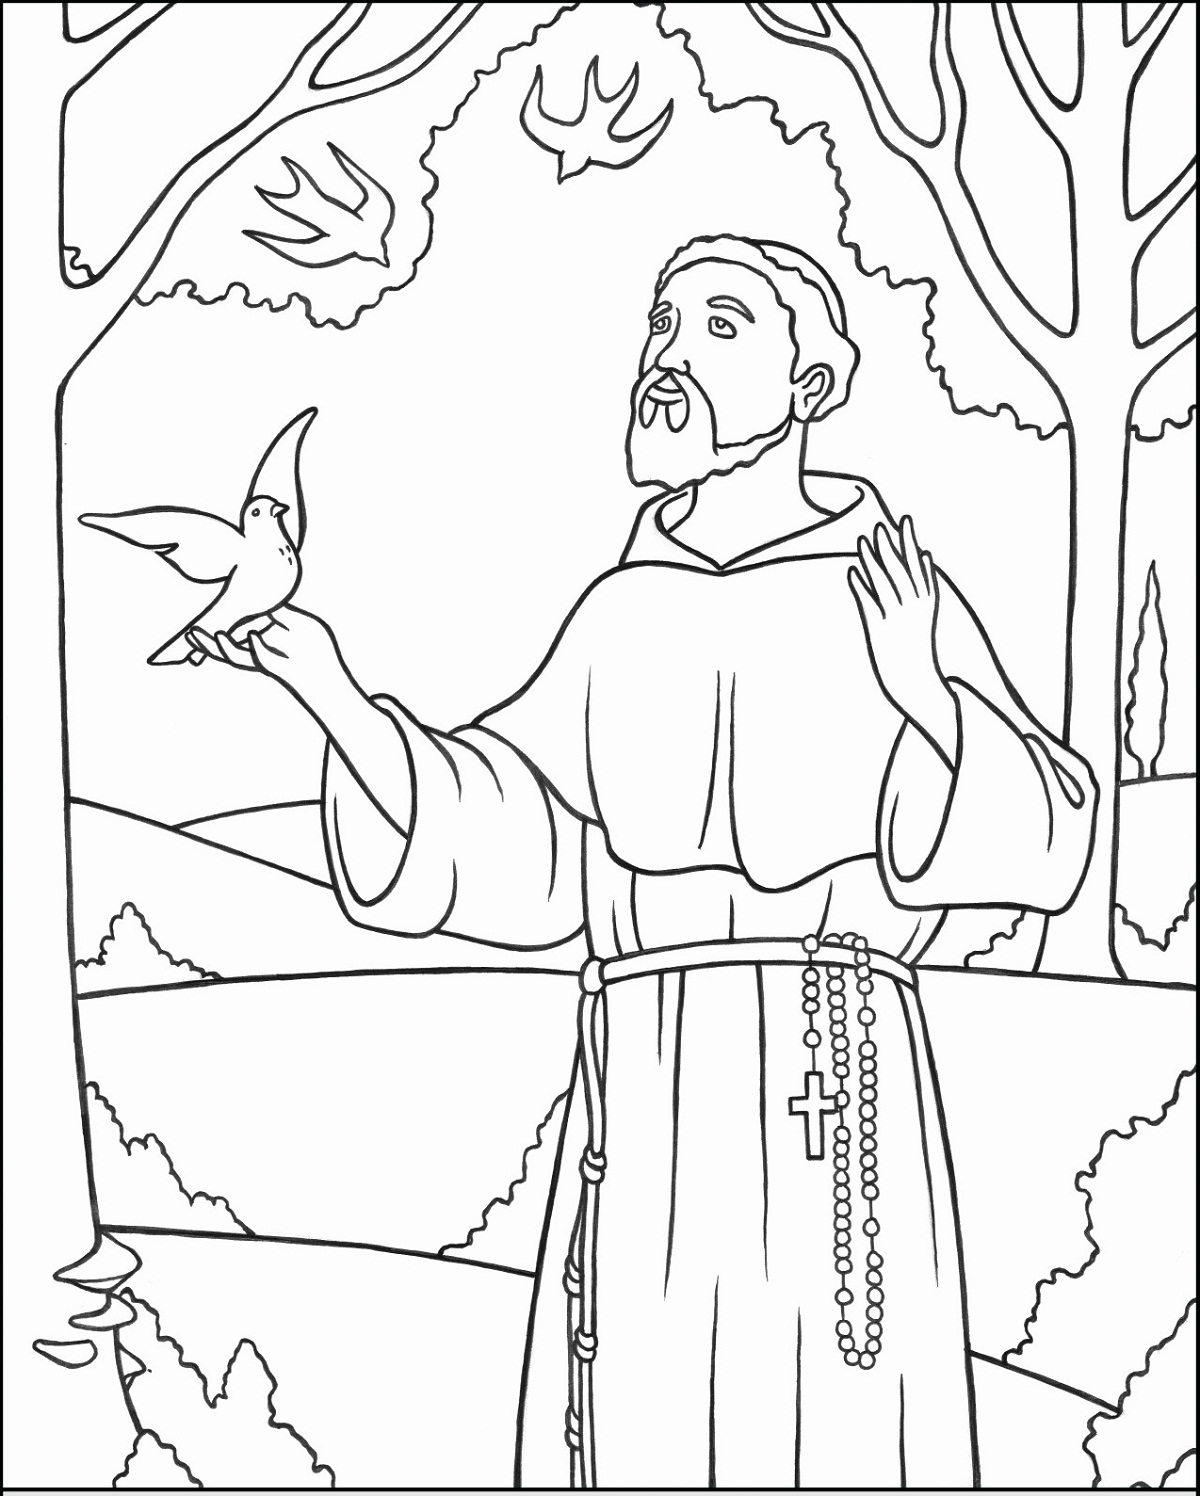 All Saints' Day Coloring Page